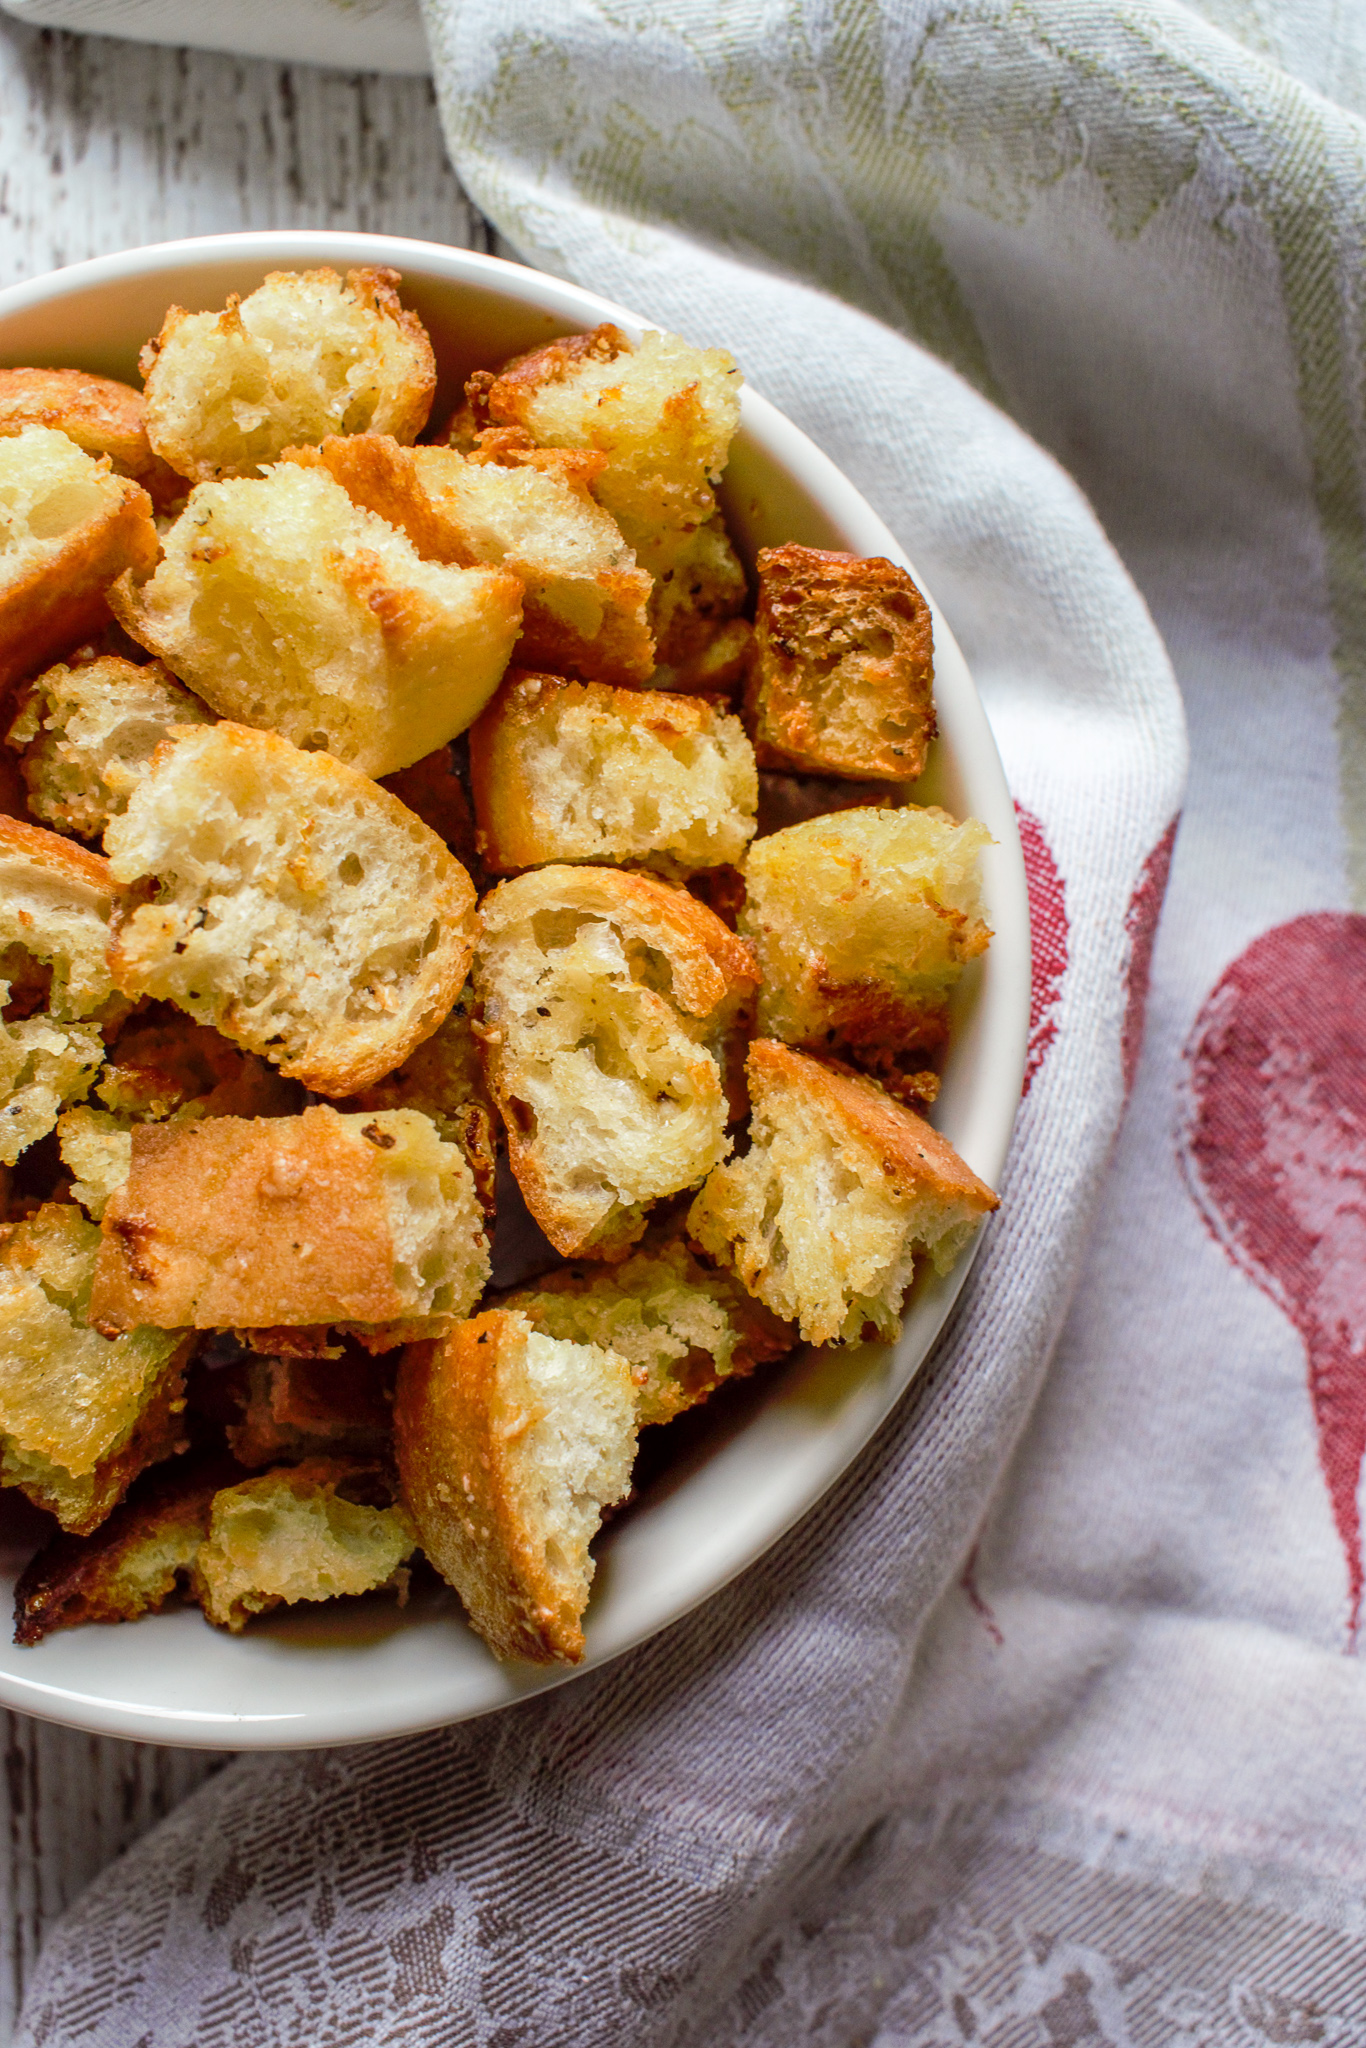 Parmesan and Garlic Croutons in a round, white bowl next to a kitchen linen.